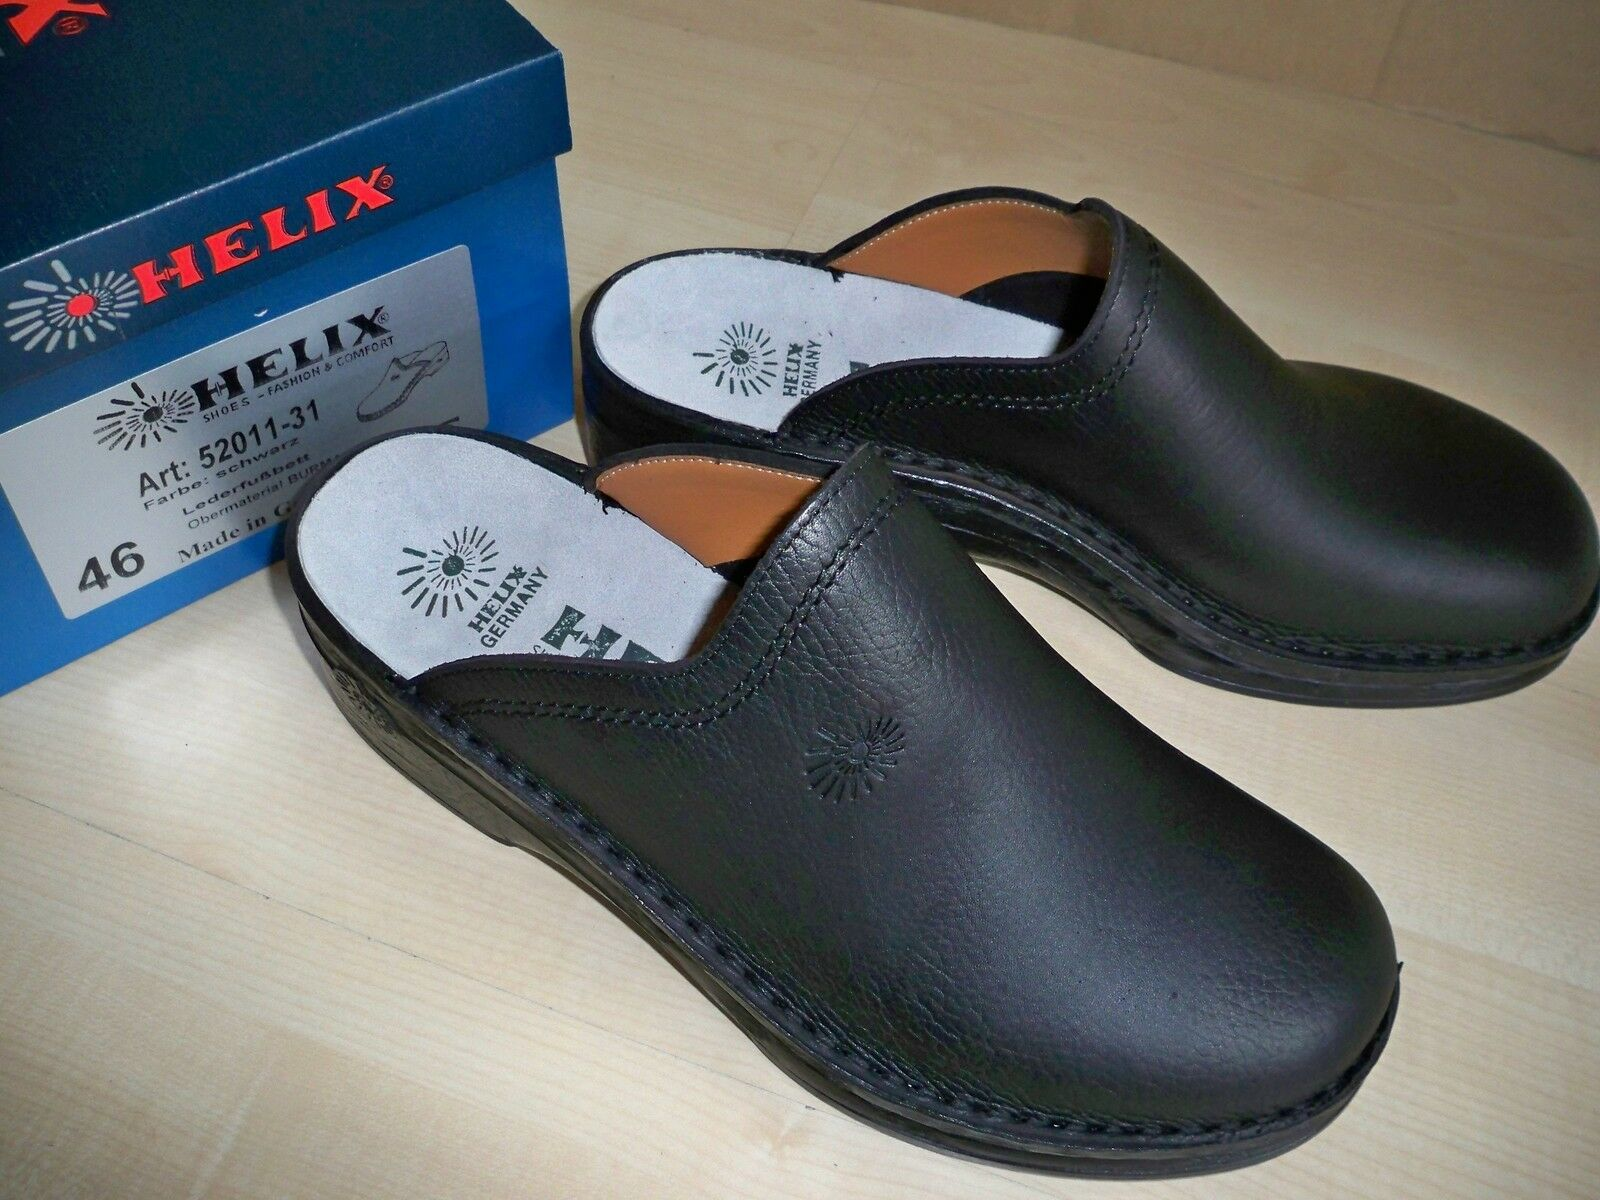 HELIX Pantoletten Clogs Made Negro Gr 41 Herren Made Clogs in Germany f67382